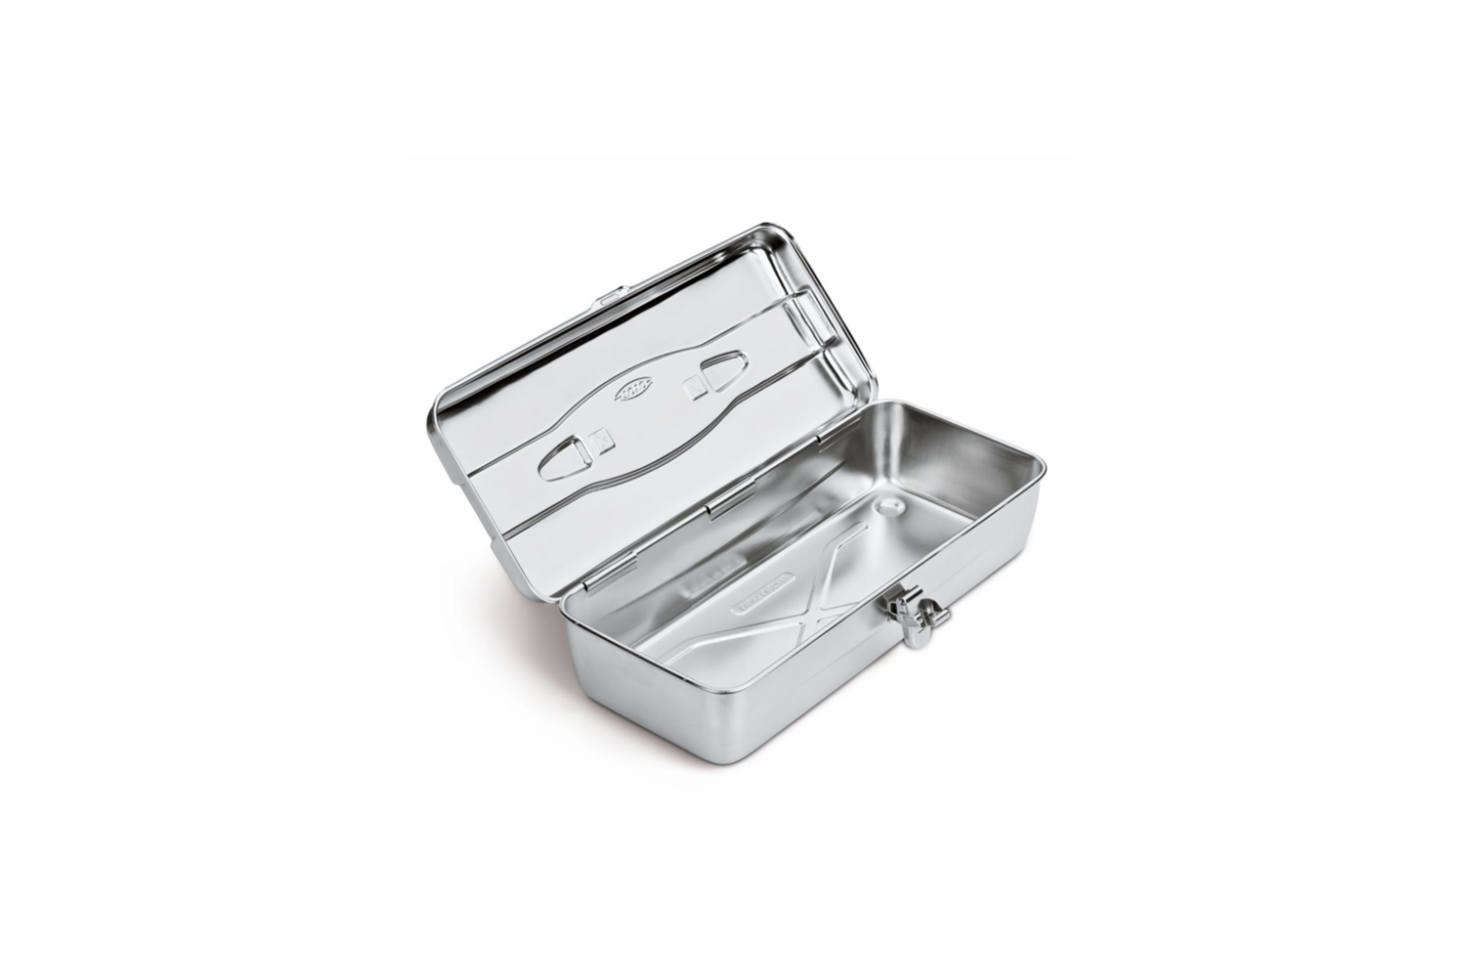 The Stainless Steel Toolbox from Japan measures 4.5 by  by 7 inches is $8 at Manufactum in Germany.